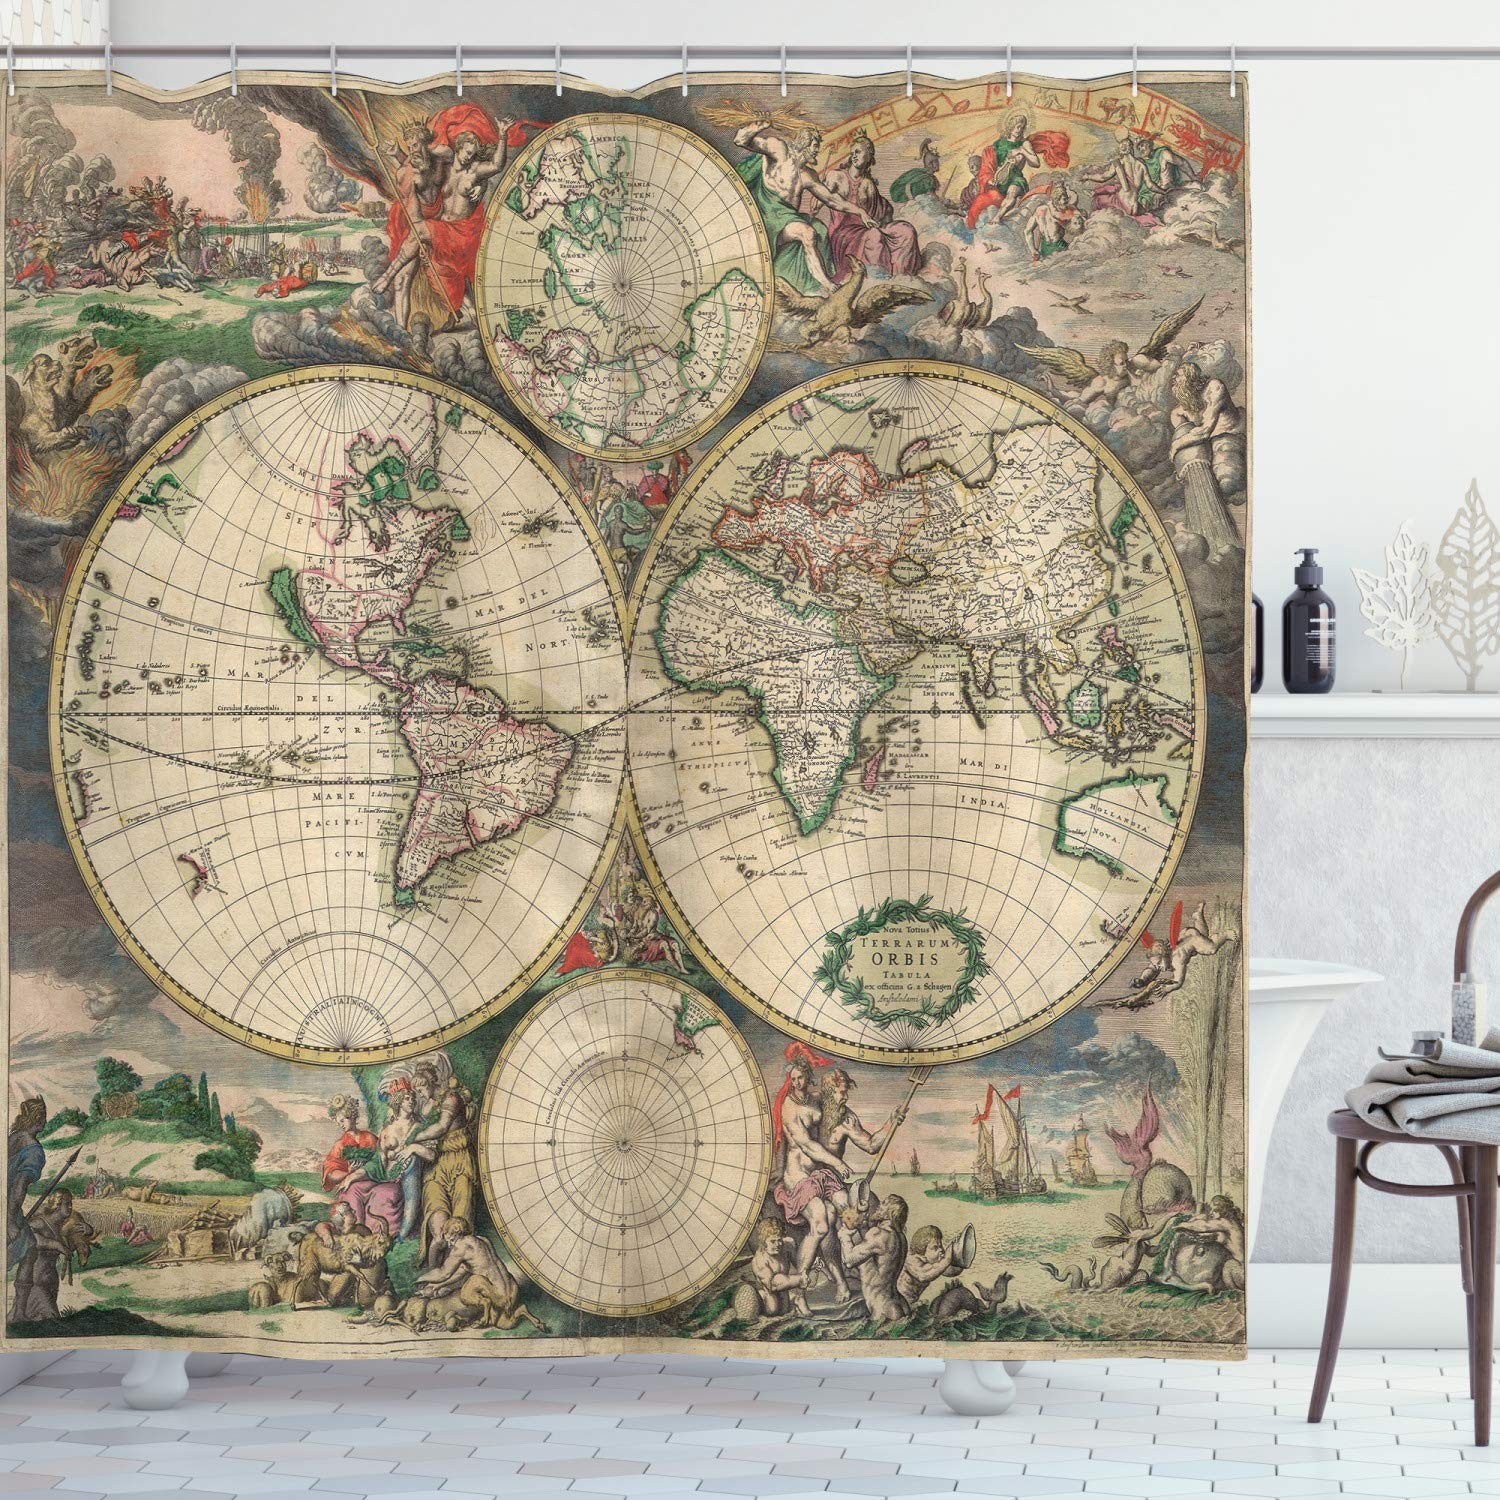 """Ambesonne World Map Shower Curtain, Antique Design with Renaissance Continents and Hemispheres Vintage Art, Cloth Fabric Bathroom Decor Set with Hooks, 75"""" Long, Beige Green"""